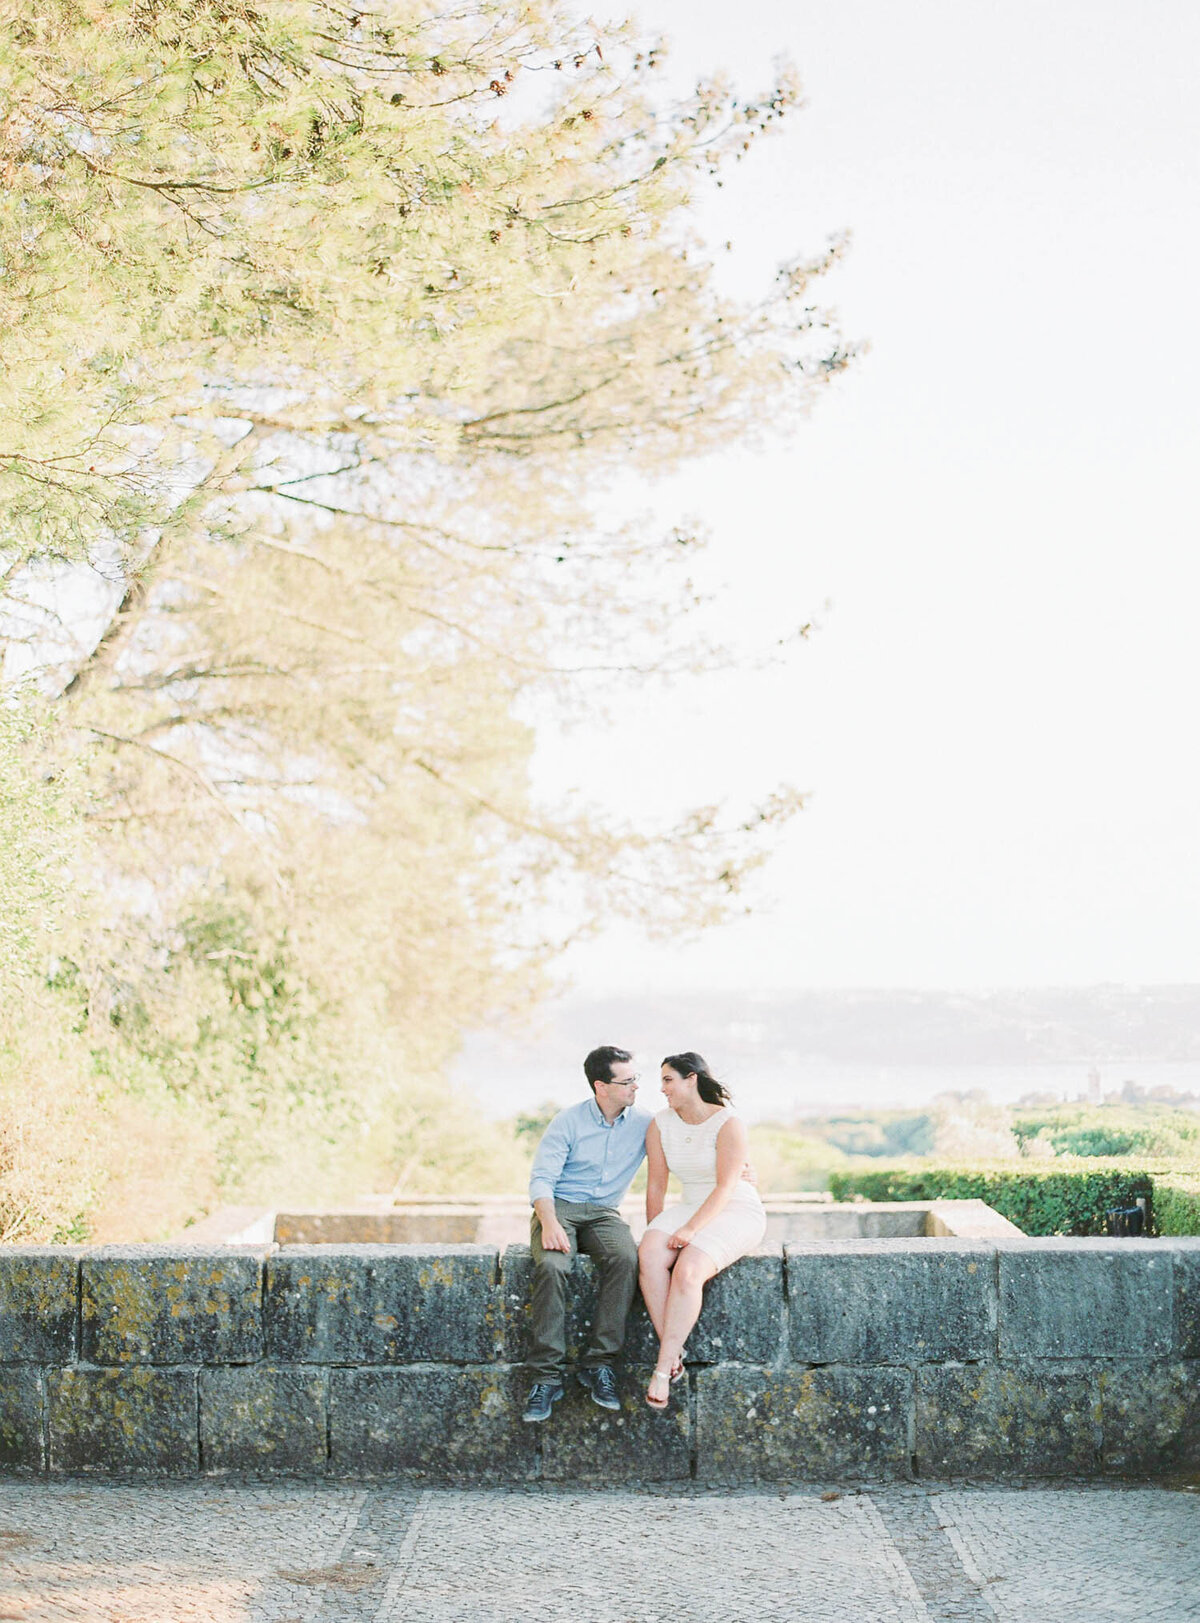 magical-engagement-in-monsanto-park-3